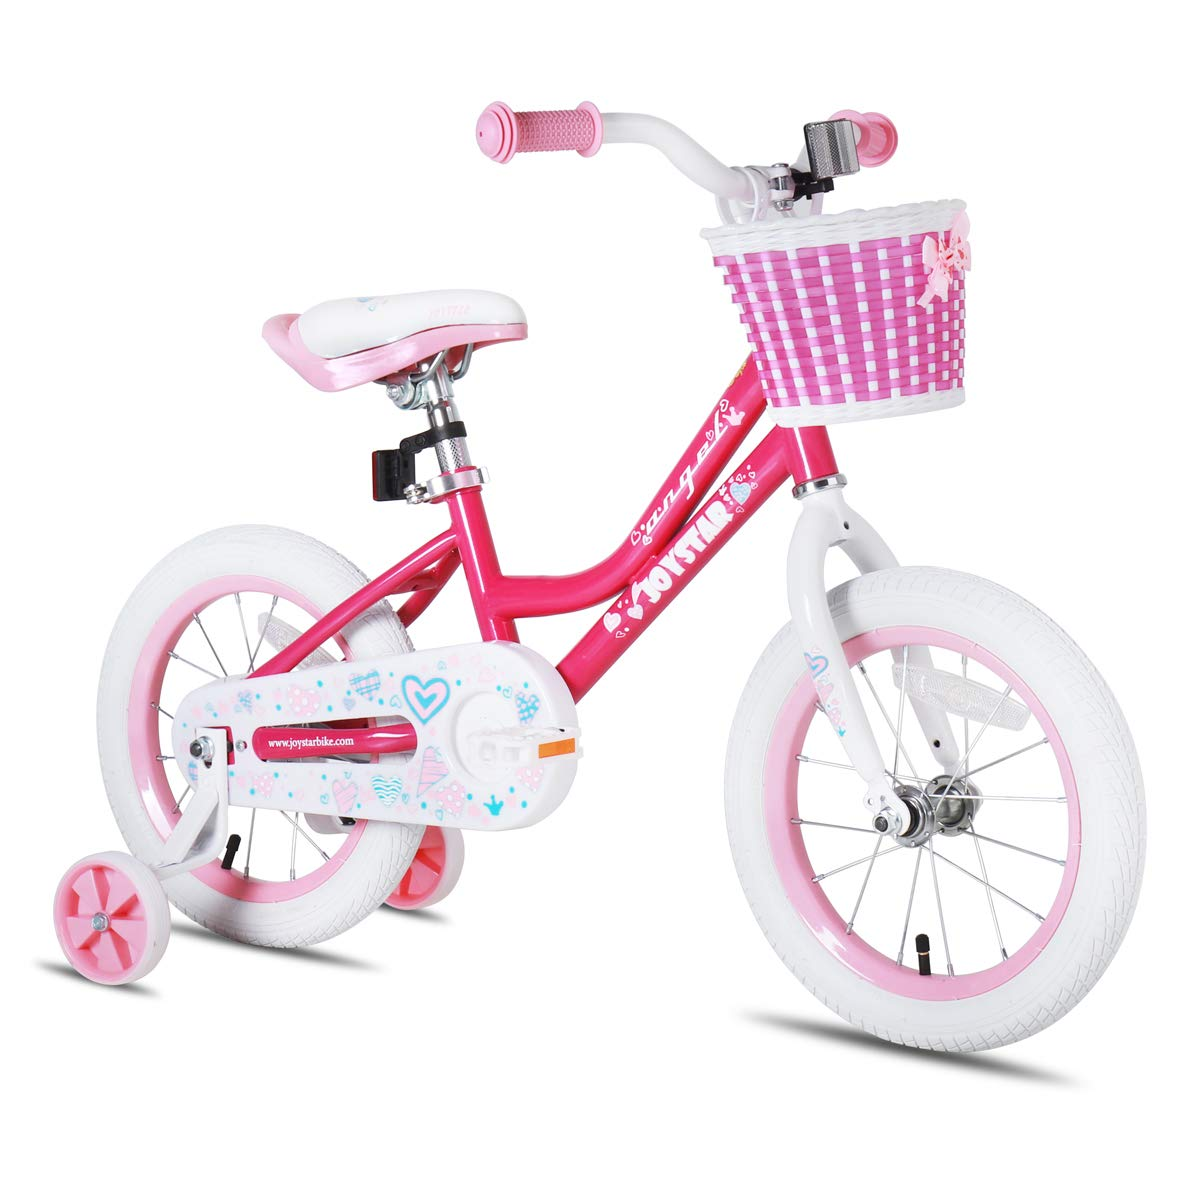 JOYSTAR Girls Bike with Training Wheels for 12 14 16 Inch Bike, Kickstand for 18 Inch Bike, Kids Cruiser Bike for 2-9 Years Old Girls product image